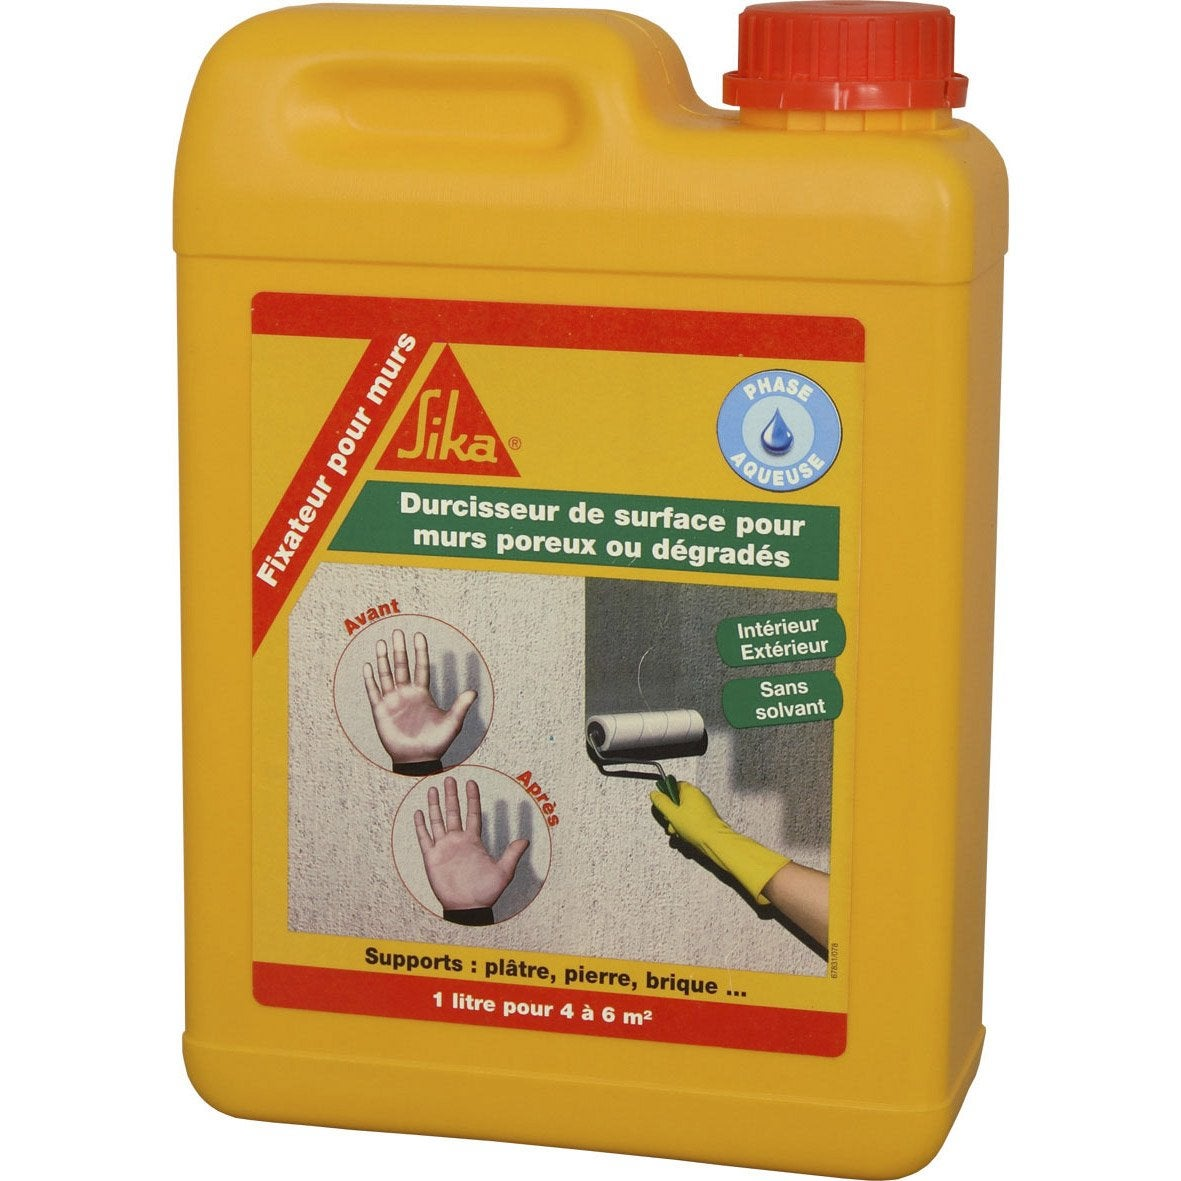 R sine protectrice sika impermur 2 l incolore leroy merlin for Beton hydrofuge leroy merlin